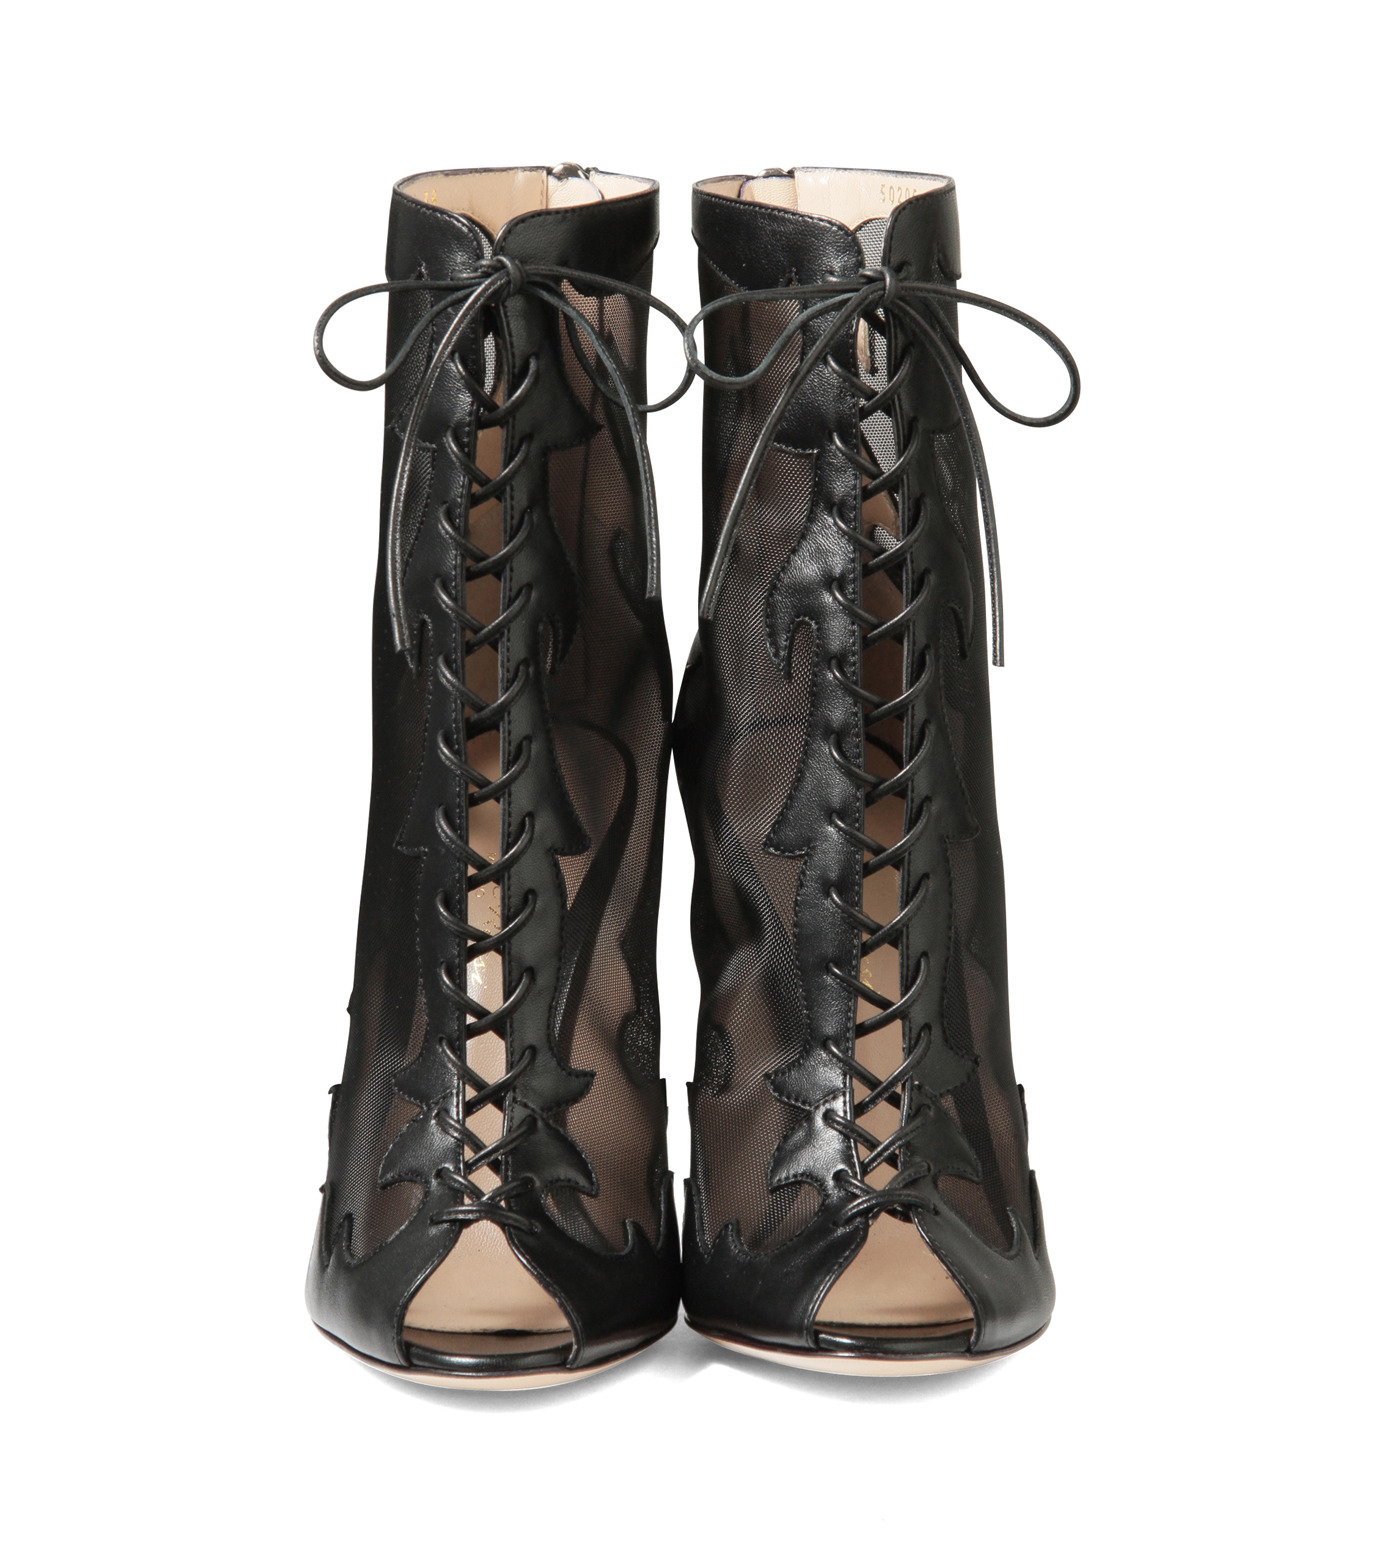 Gianvito Rossi(ジャンヴィト ロッシ)のWestern Sheer Lace Up Boots-BLACK(シューズ/shoes)-GQ50205-13 拡大詳細画像4